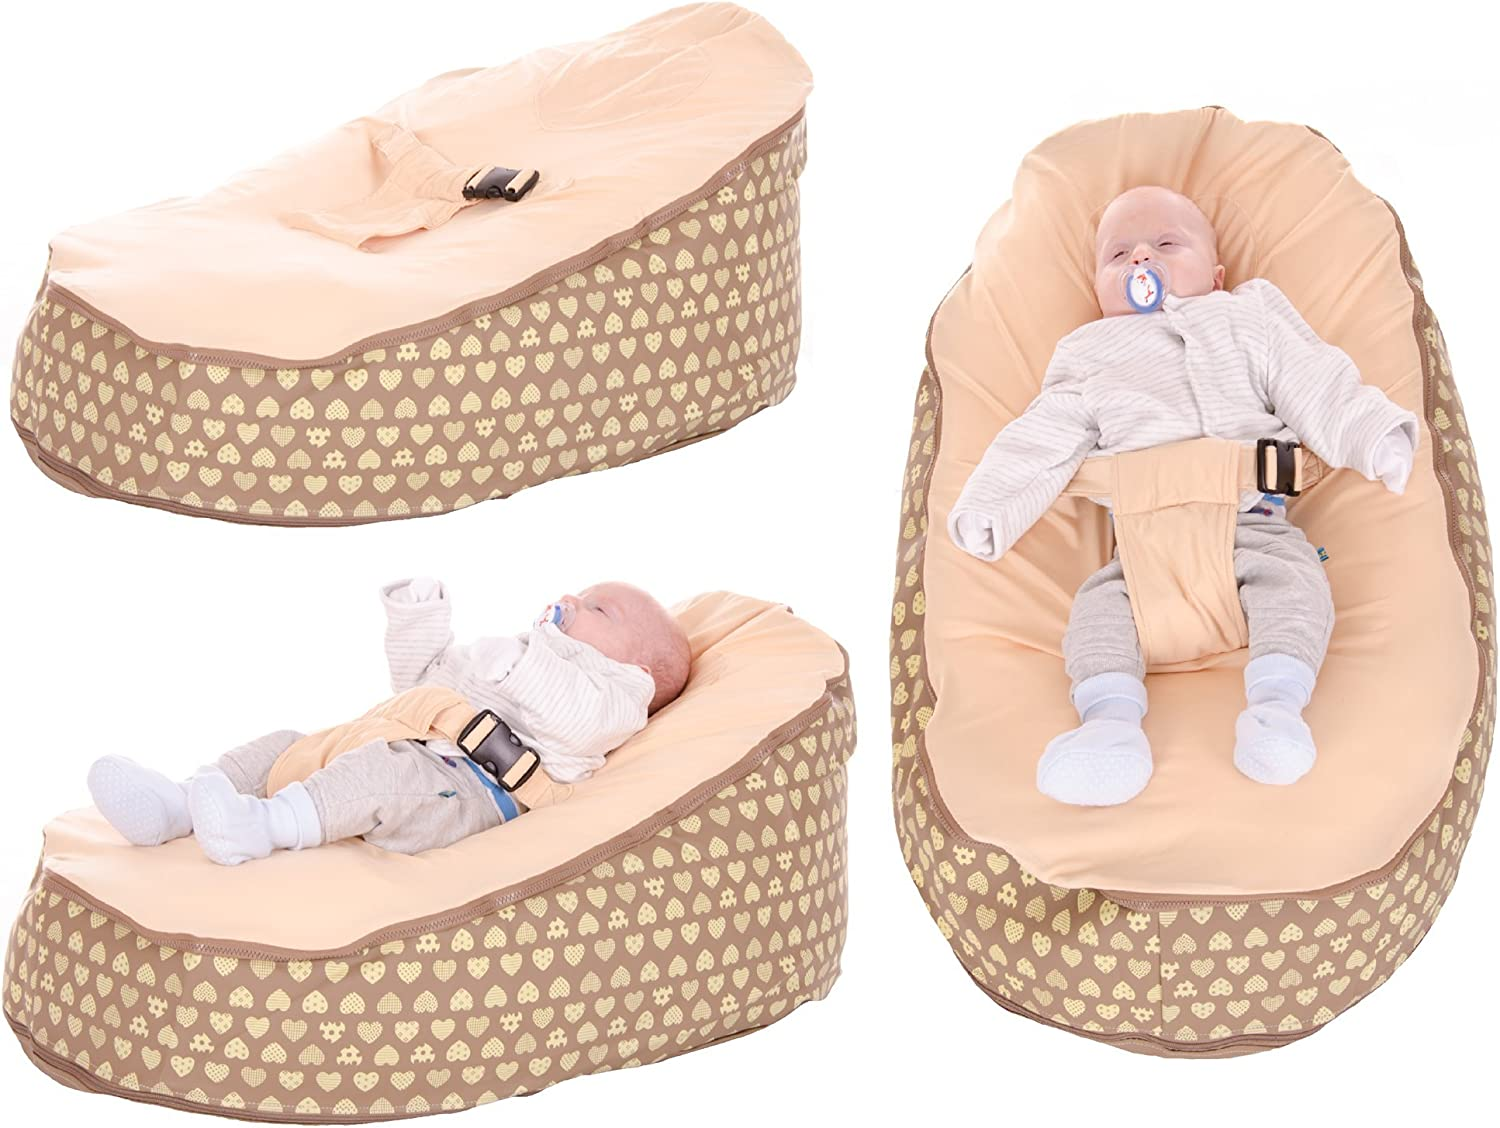 Baby Bean Bag By Lilypod UK Chair In Neutral Heart Design Including Filling